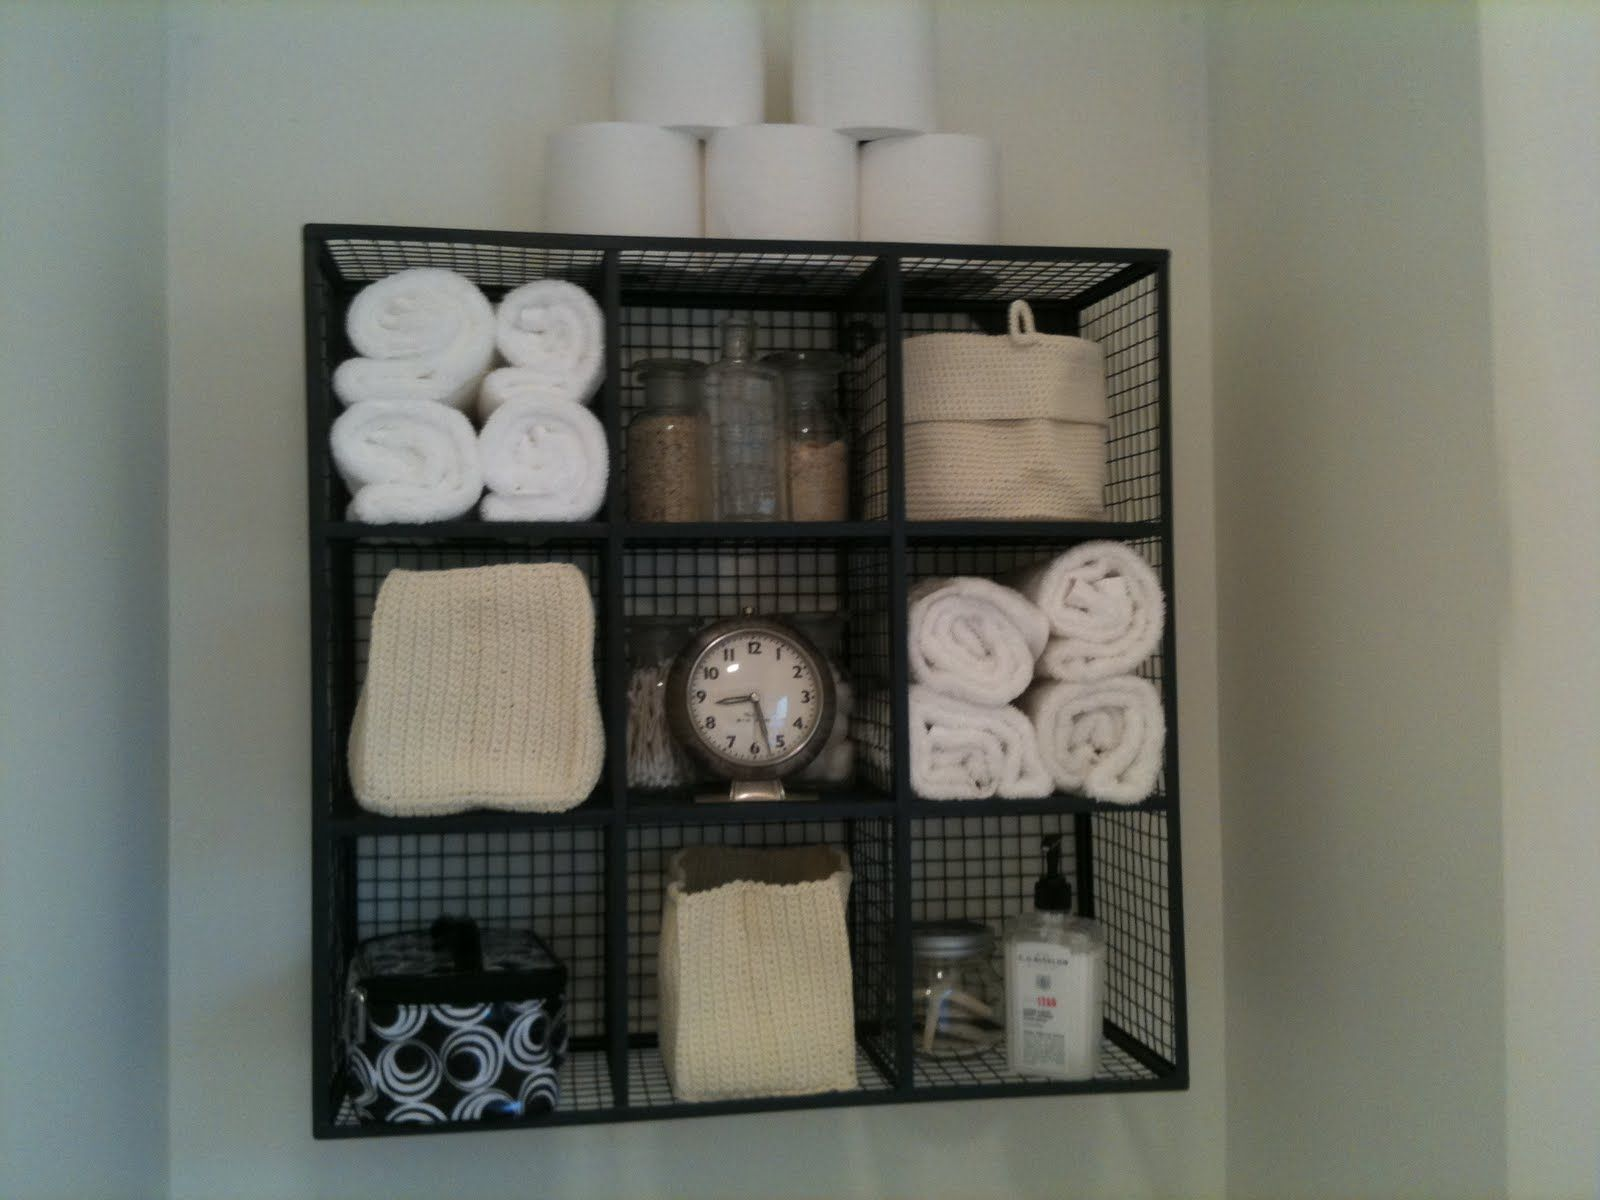 17 brilliant over the toilet storage ideas toilet Over the toilet design ideas